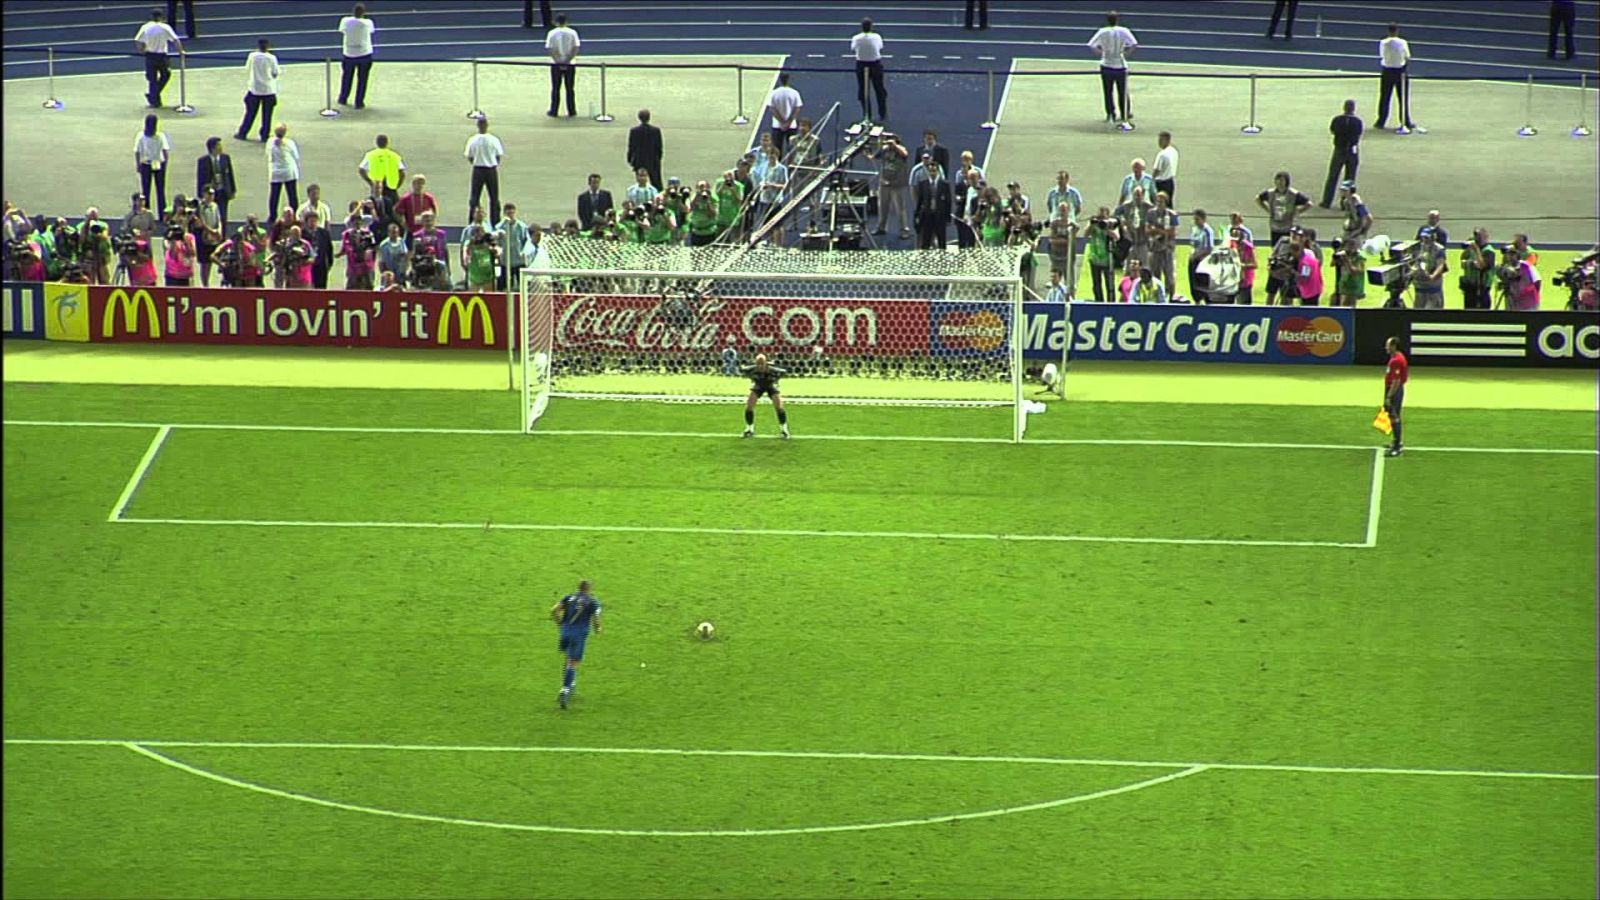 Pháp - Ý Penalty WC 2006